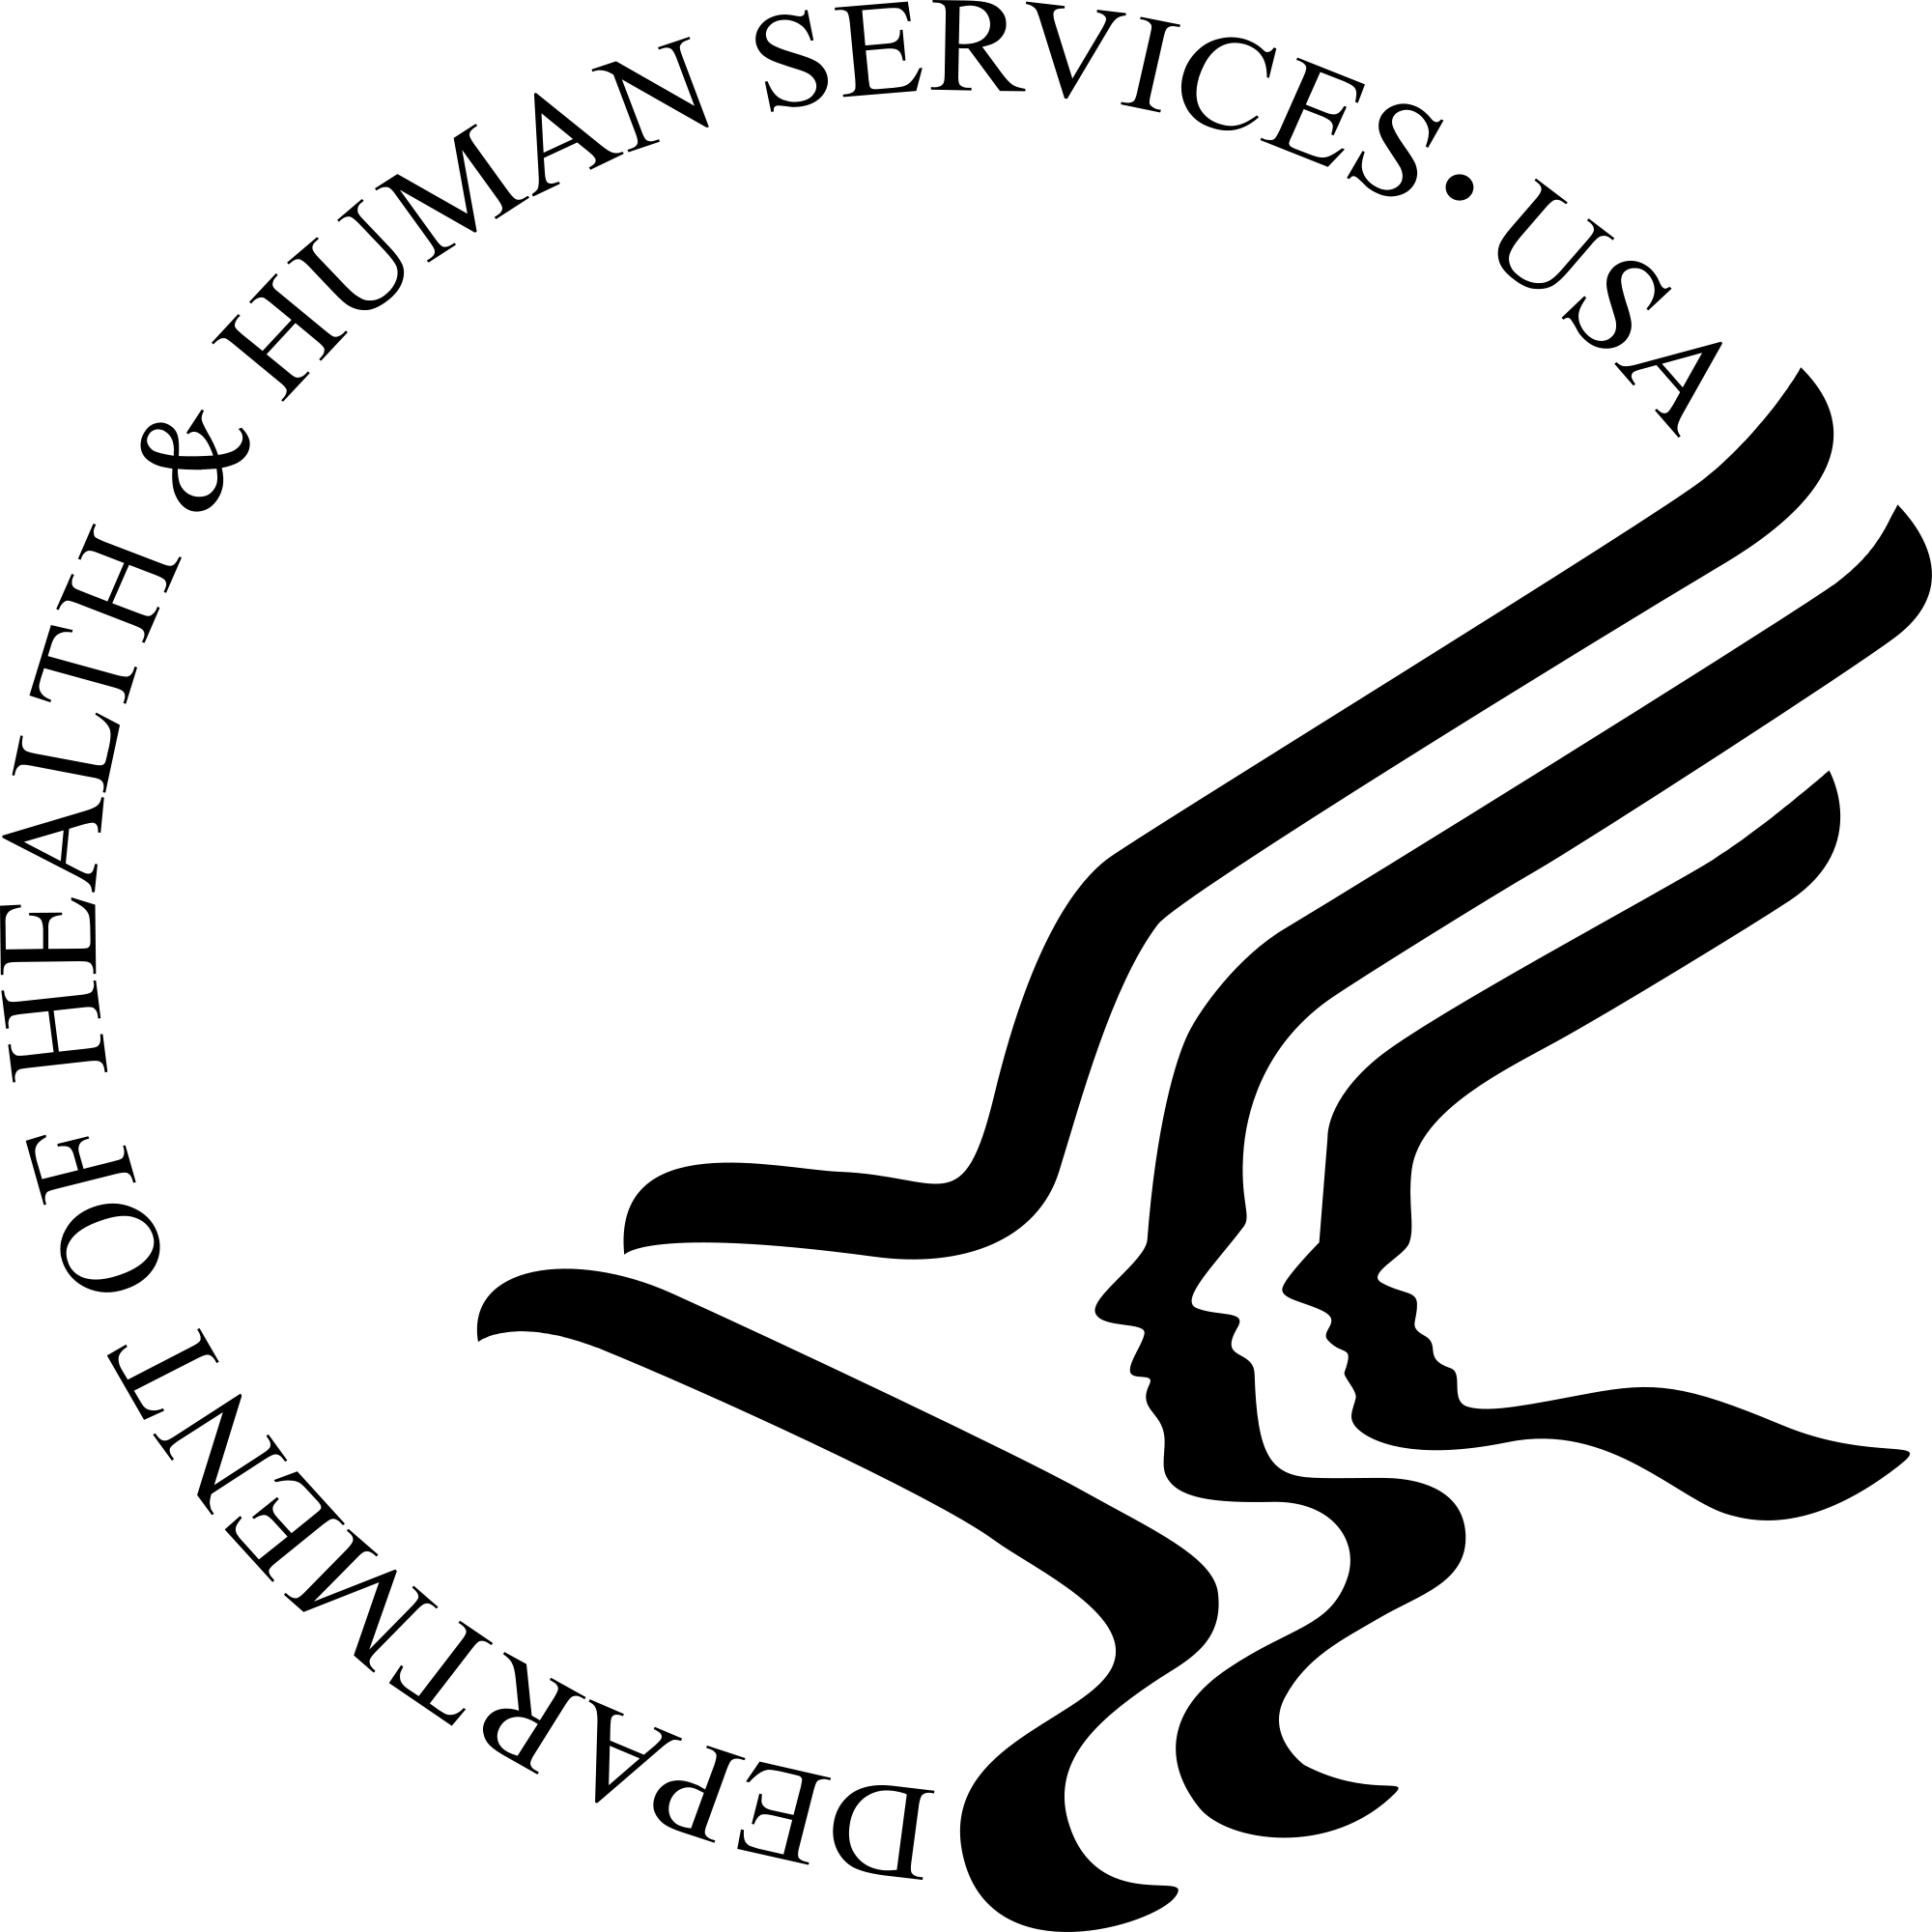 Department of Health & Human Services USA